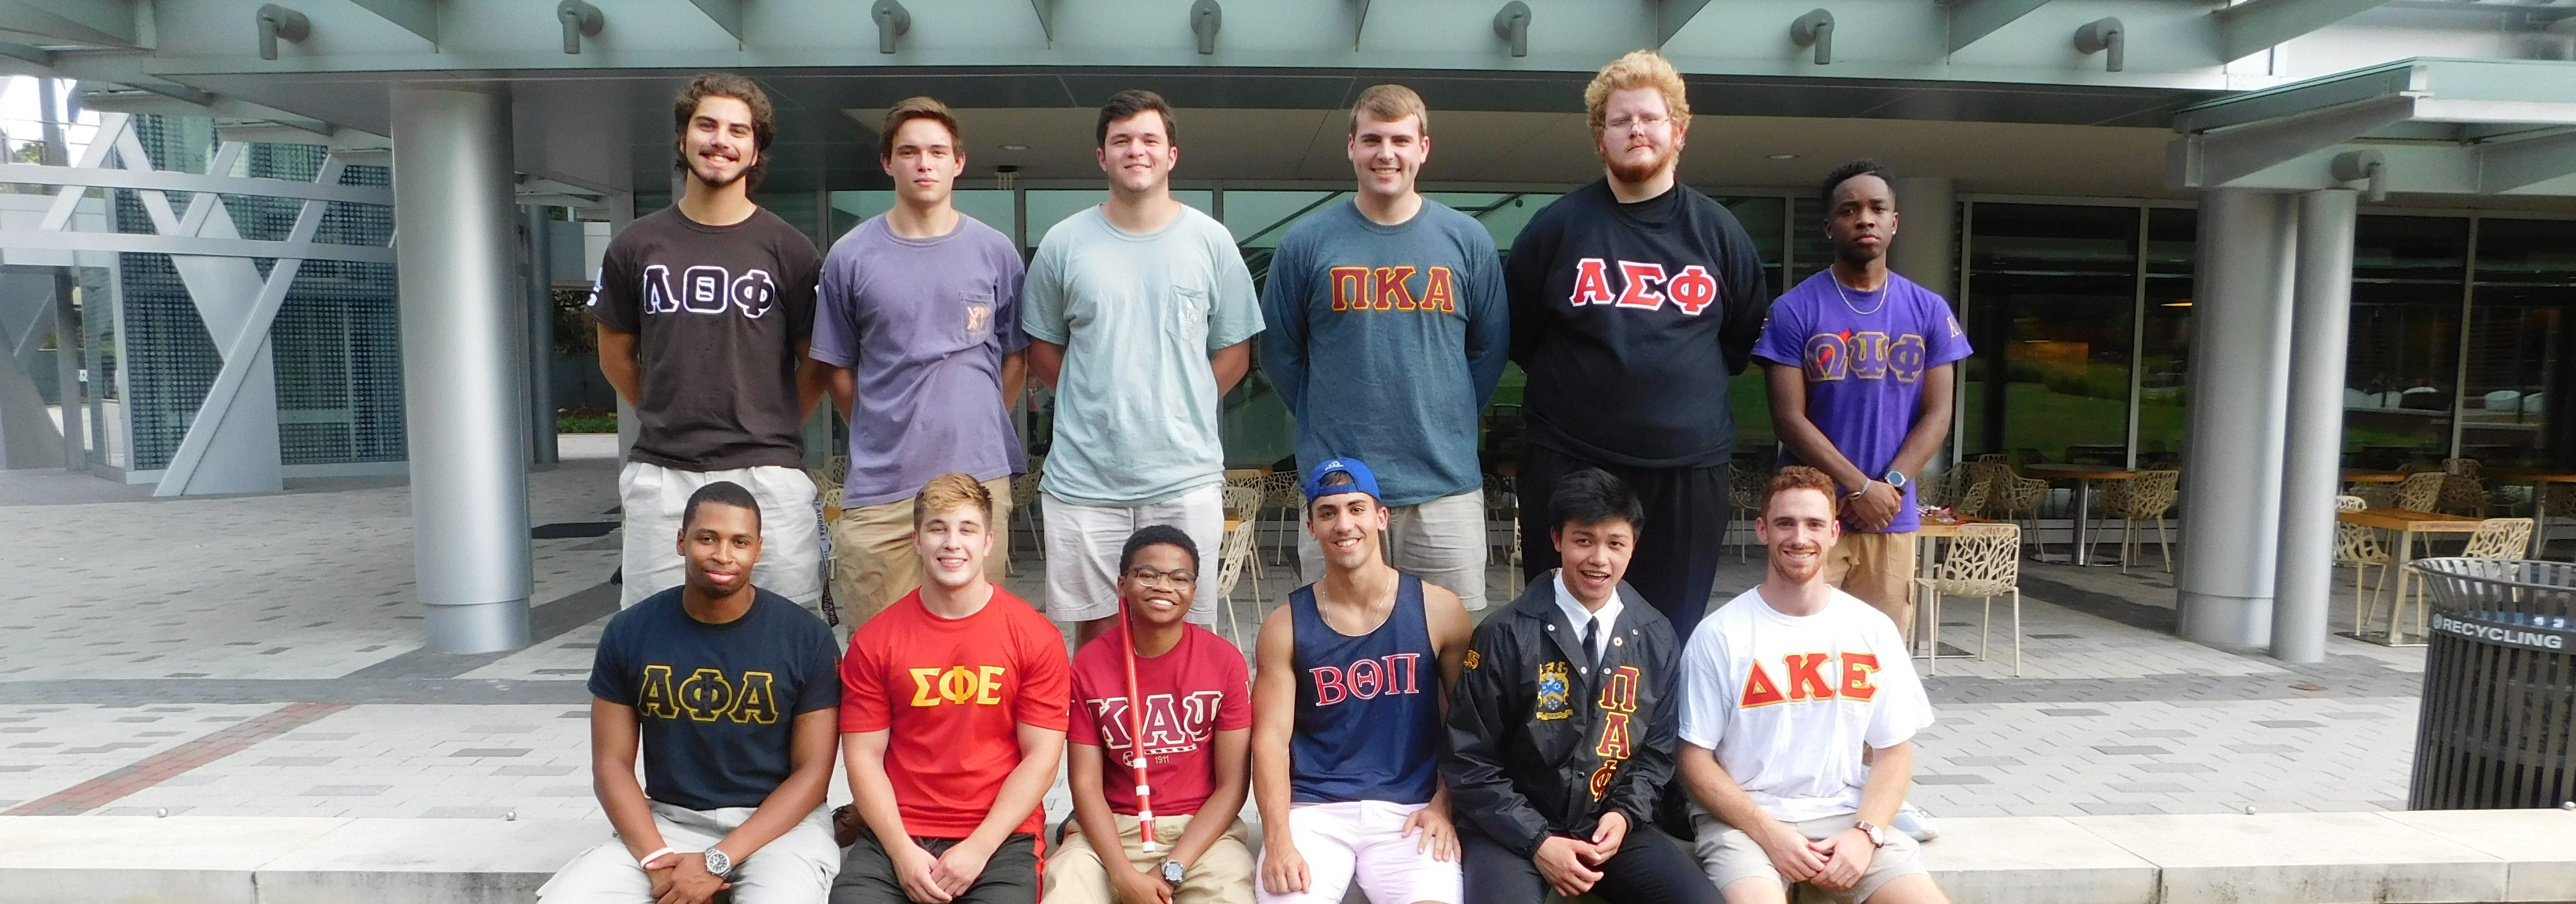 Fraternities Fraternity And Sorority Life